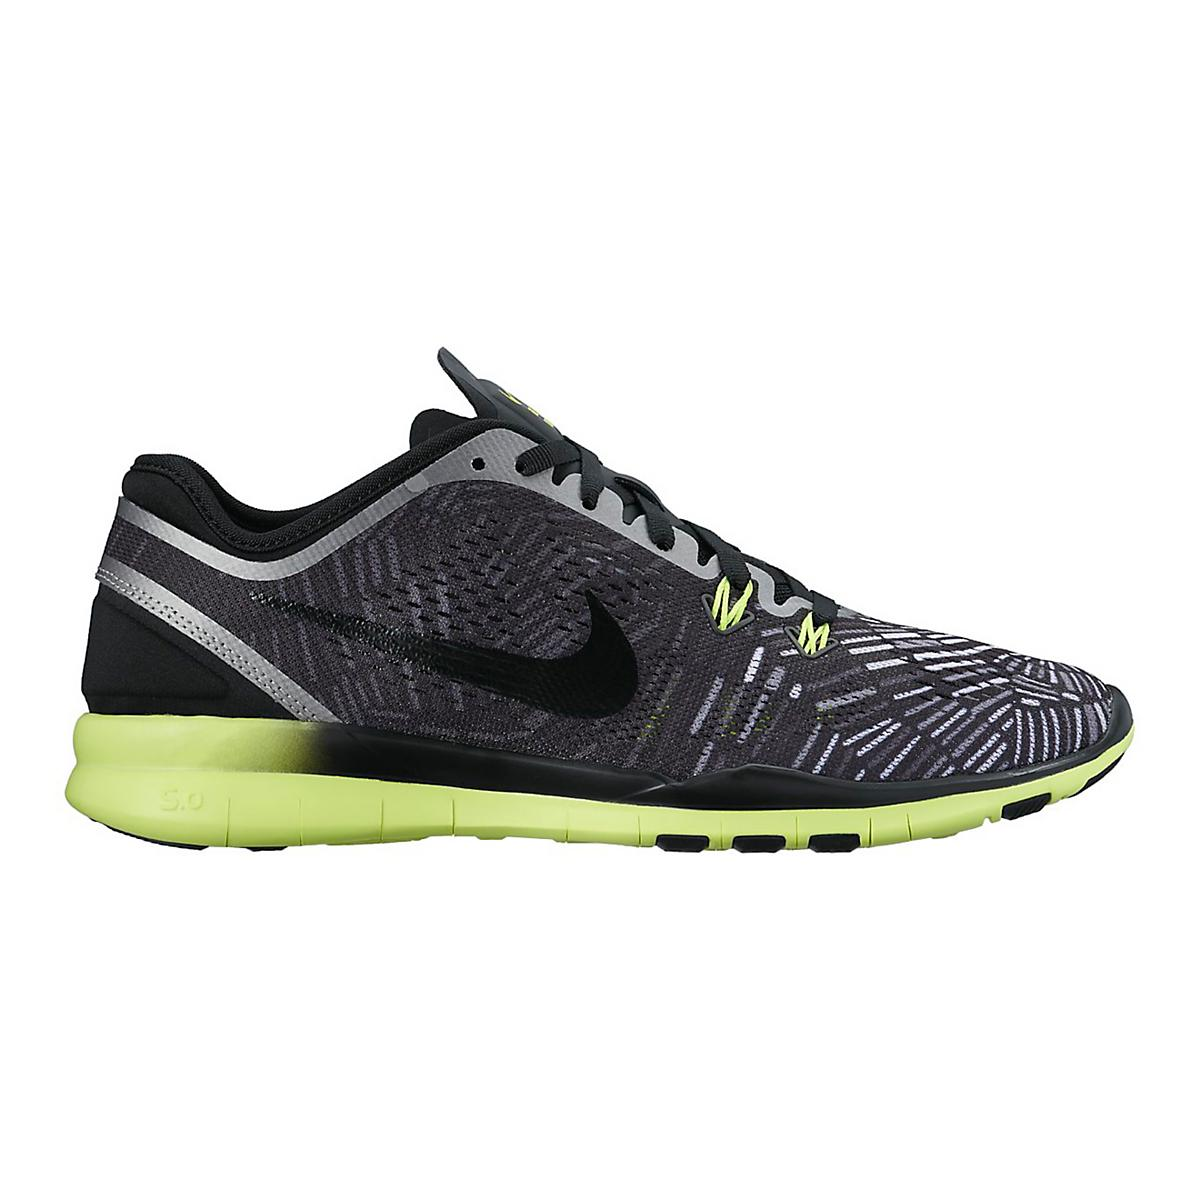 ce578a0cd3bd Womens Nike Free 5.0 TR Fit 5 Print Cross Training Shoe at Road Runner  Sports